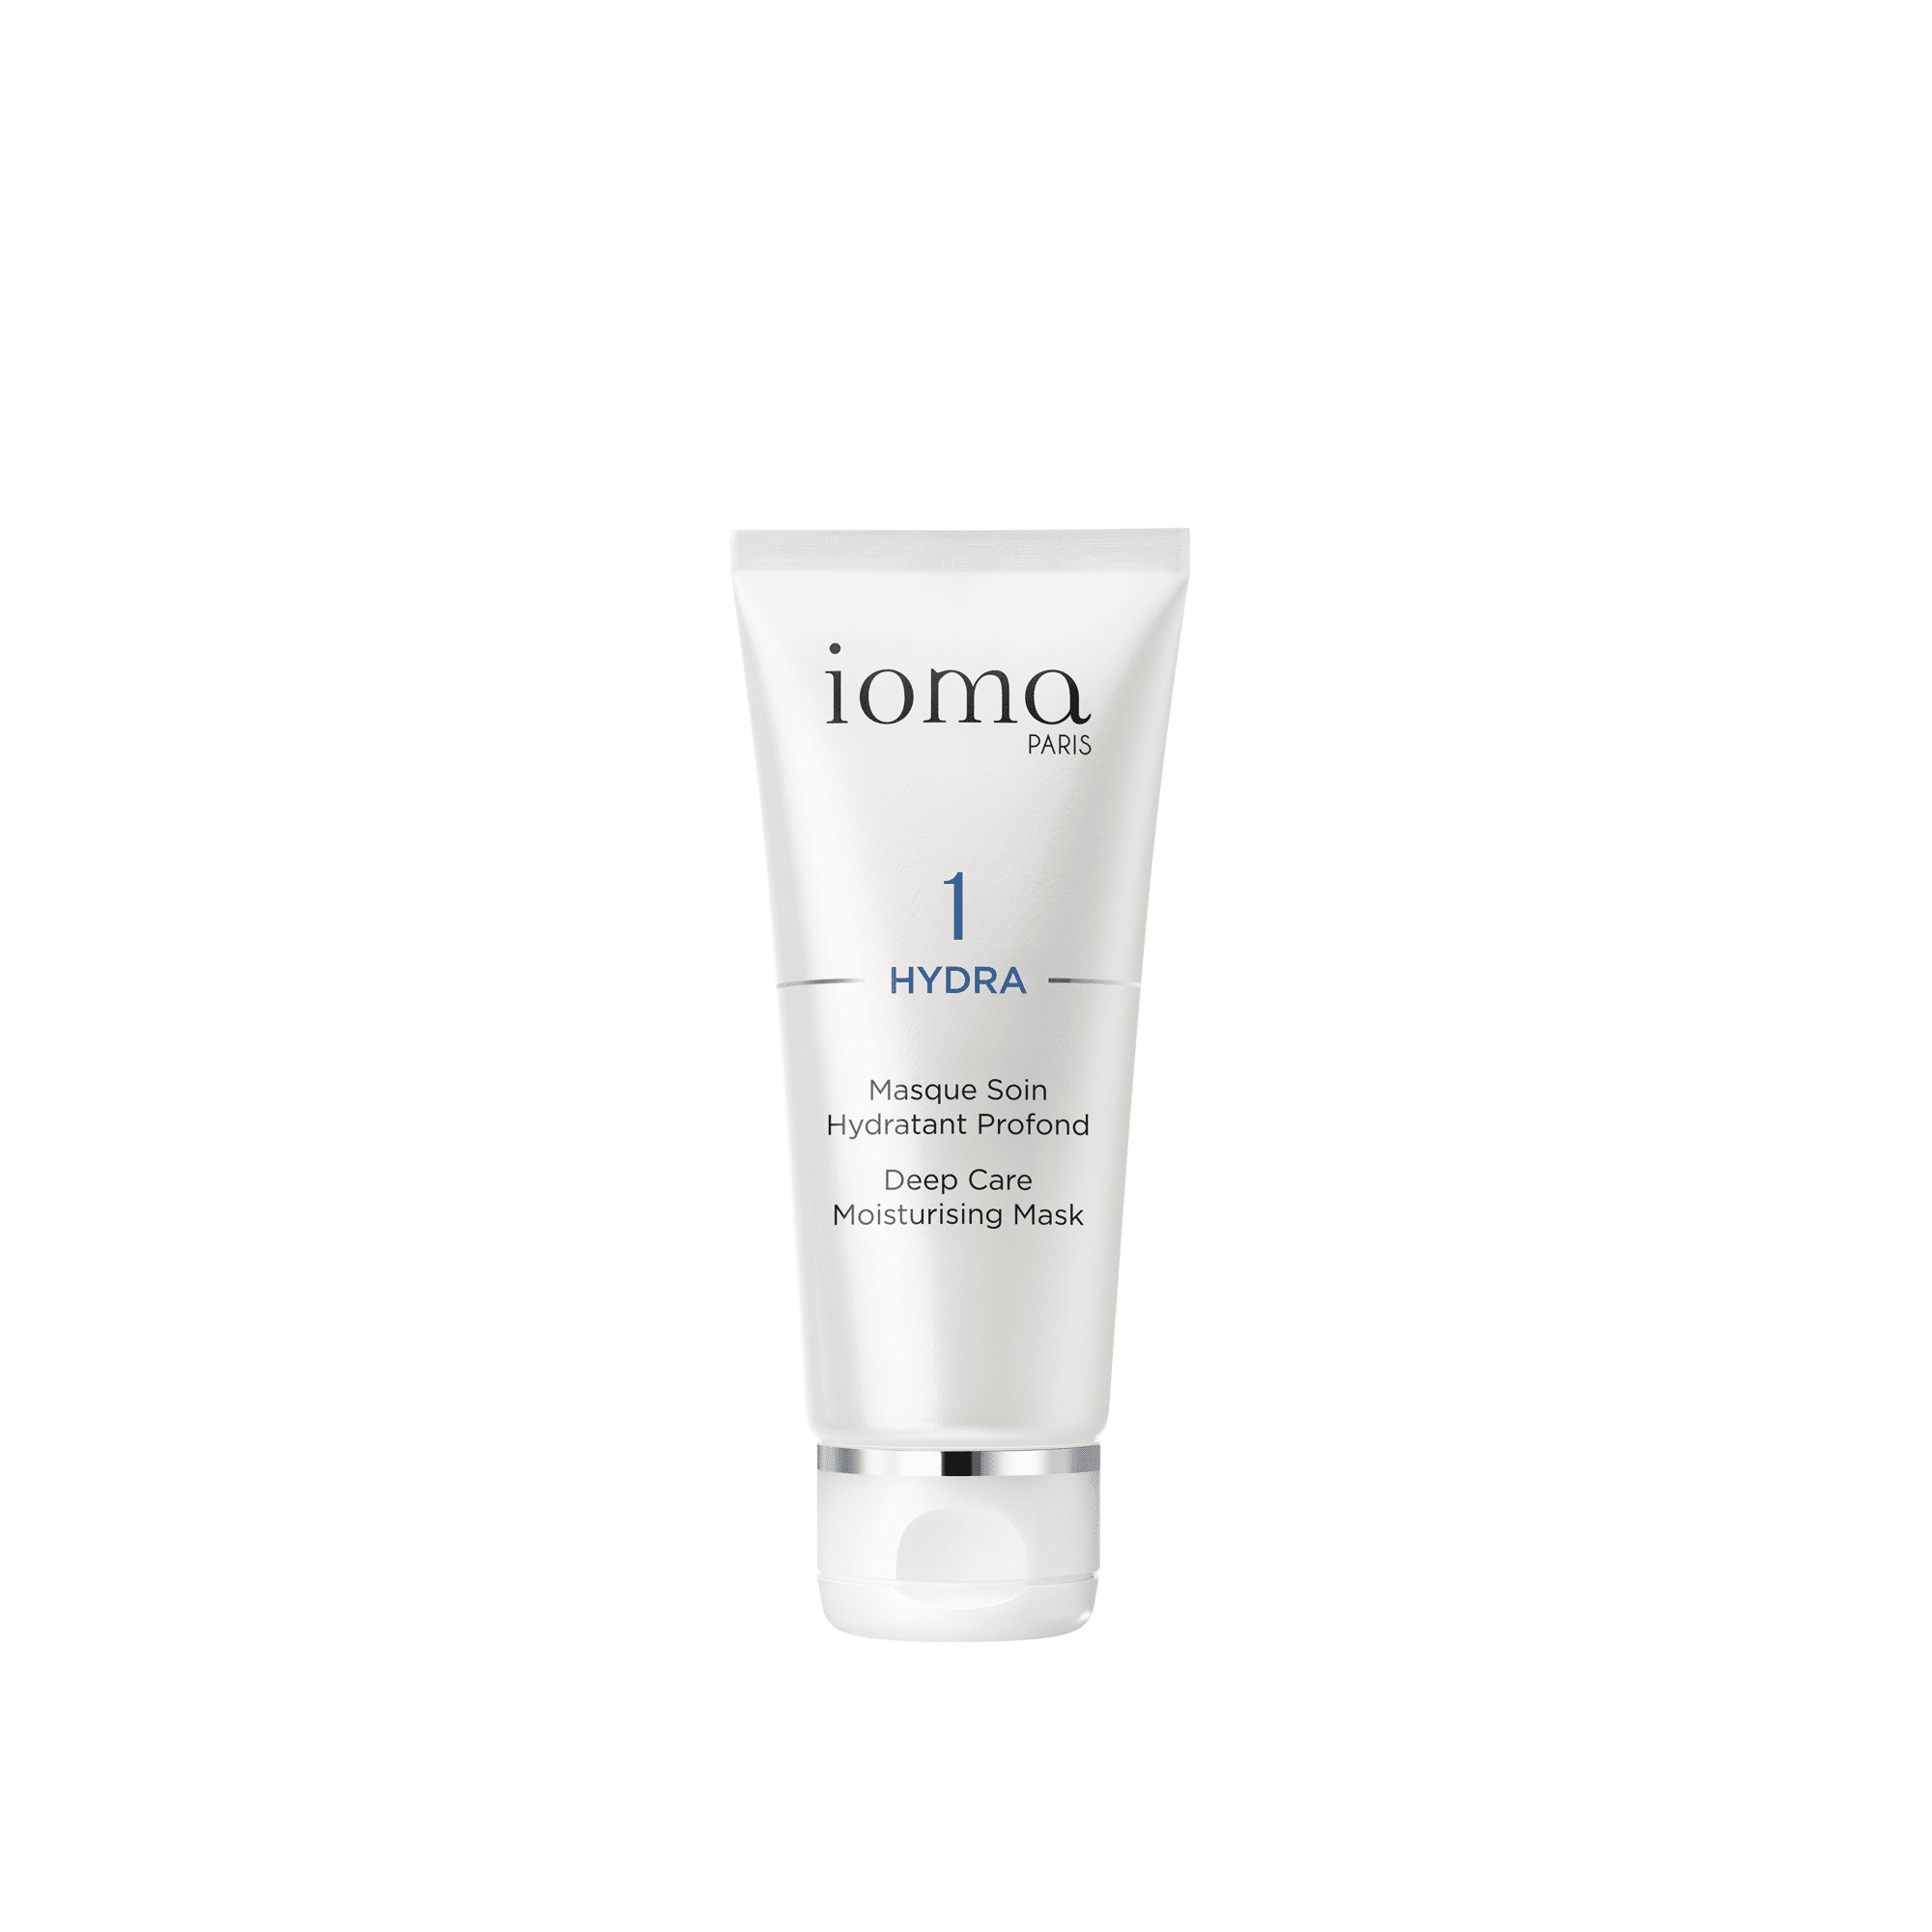 ioma-deep-care-moisturising-mask-hydra-face-care